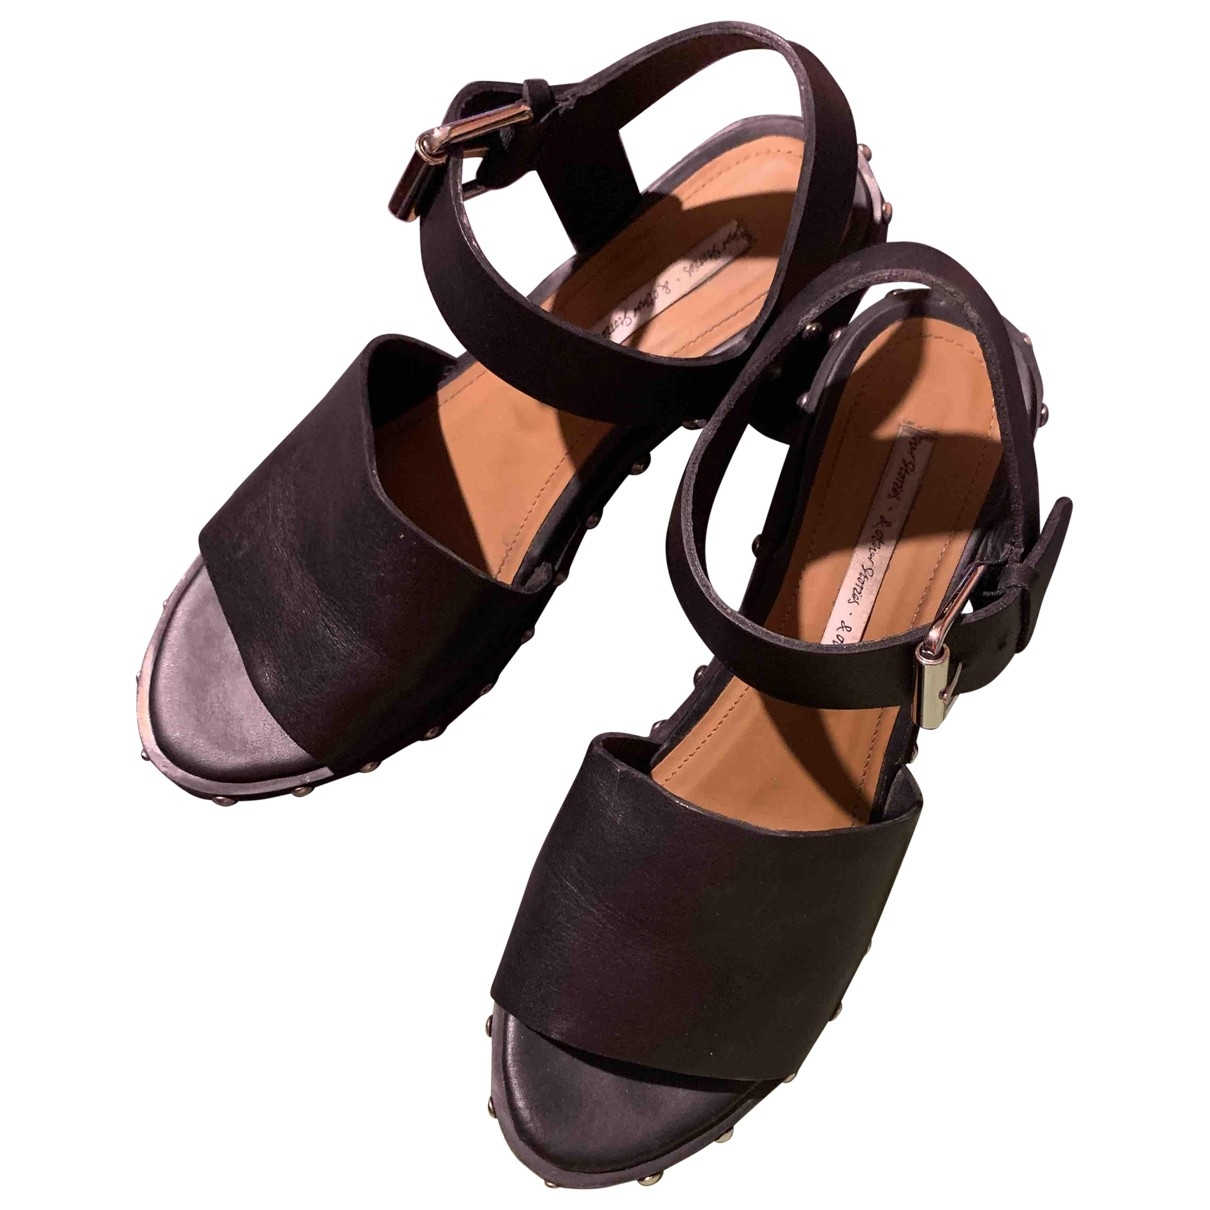 & Stories \N Black Leather Sandals for Women 39 EU